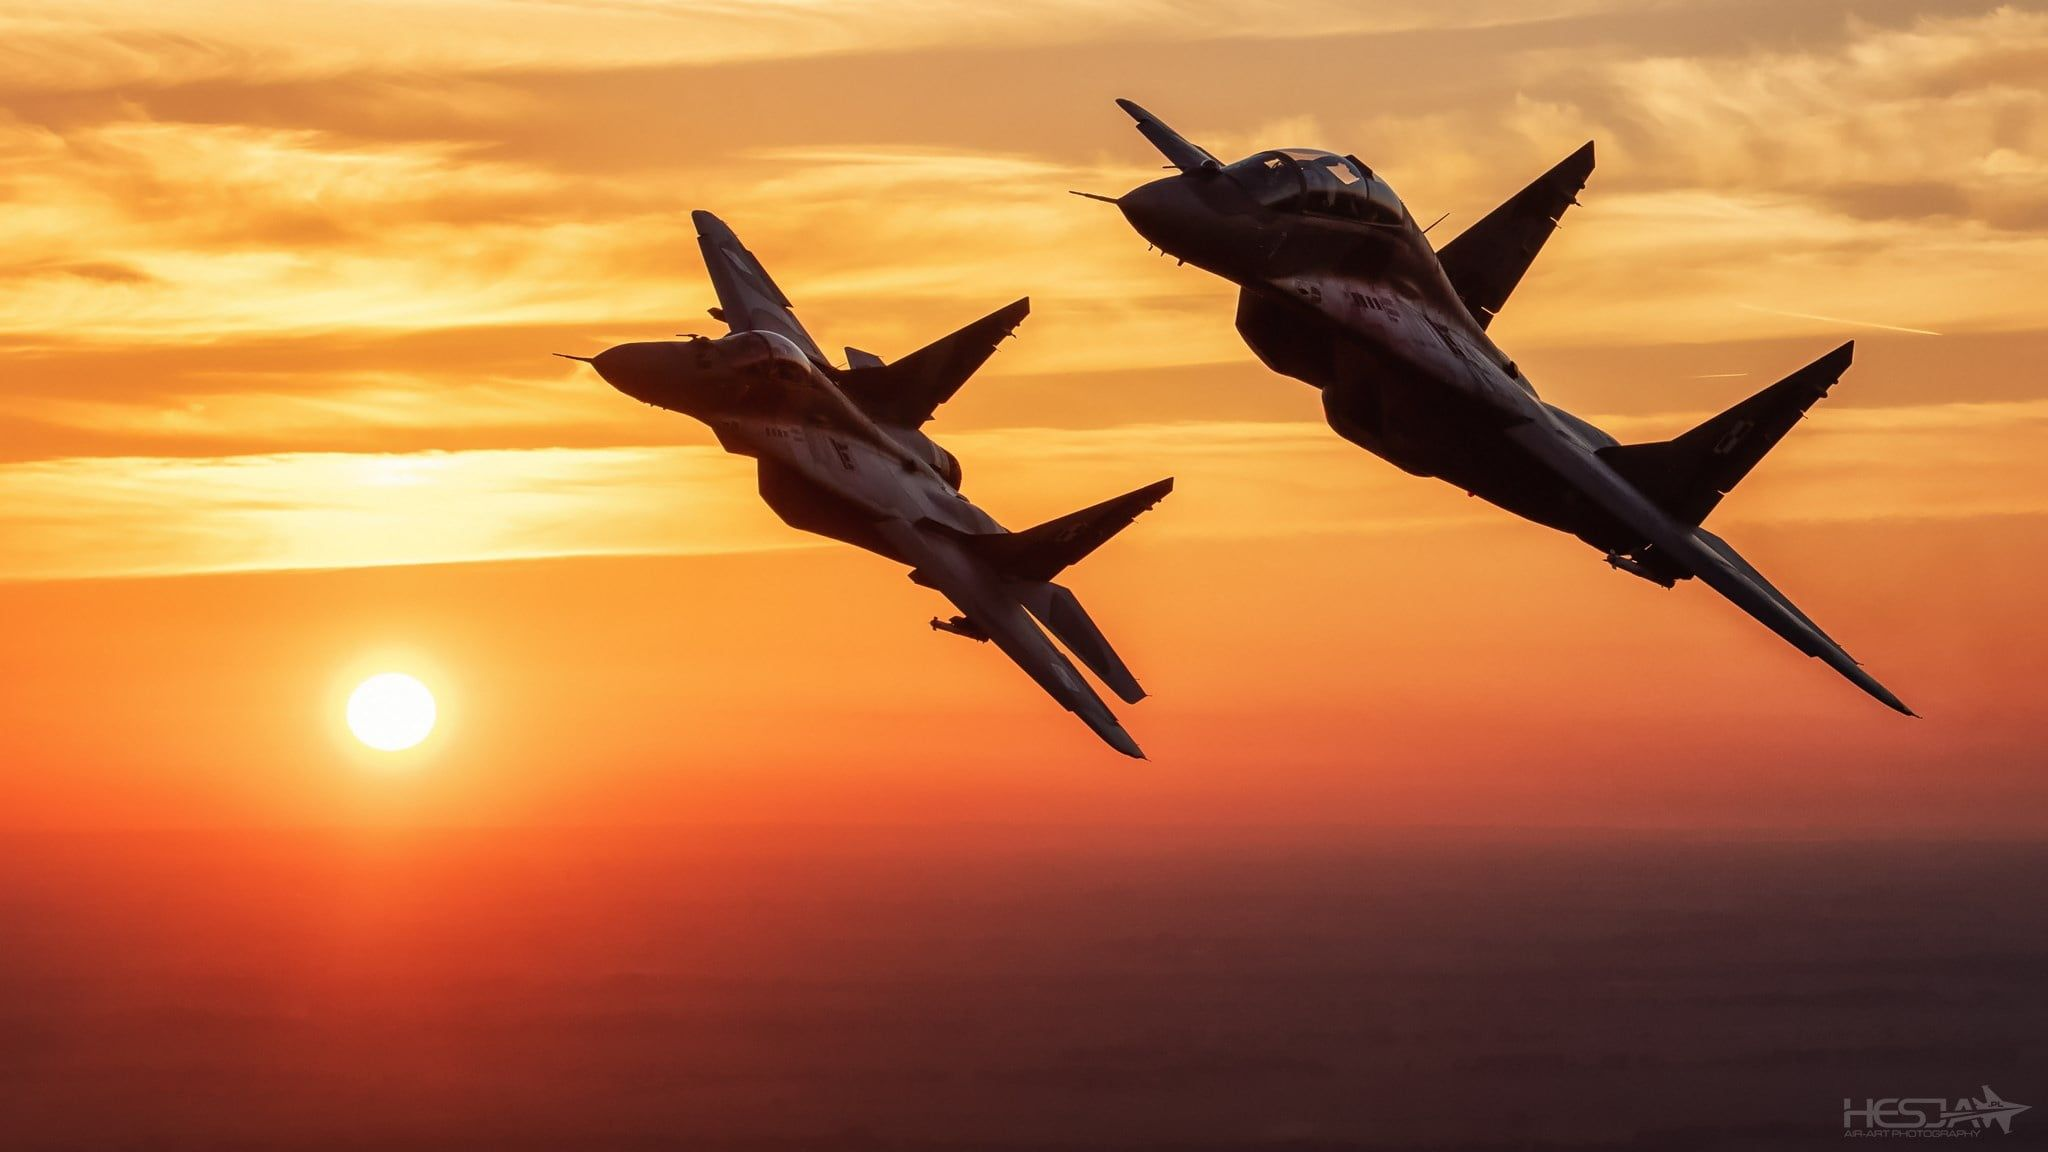 Sunset The Sky Clouds Fighter The Mig 29 Polish Air Force Hesja Air Art Photography 1080p Wallpaper Hdwallpaper D Mig Fighter Air Force Wallpaper Mig 29 29 full hd wallpaper hd